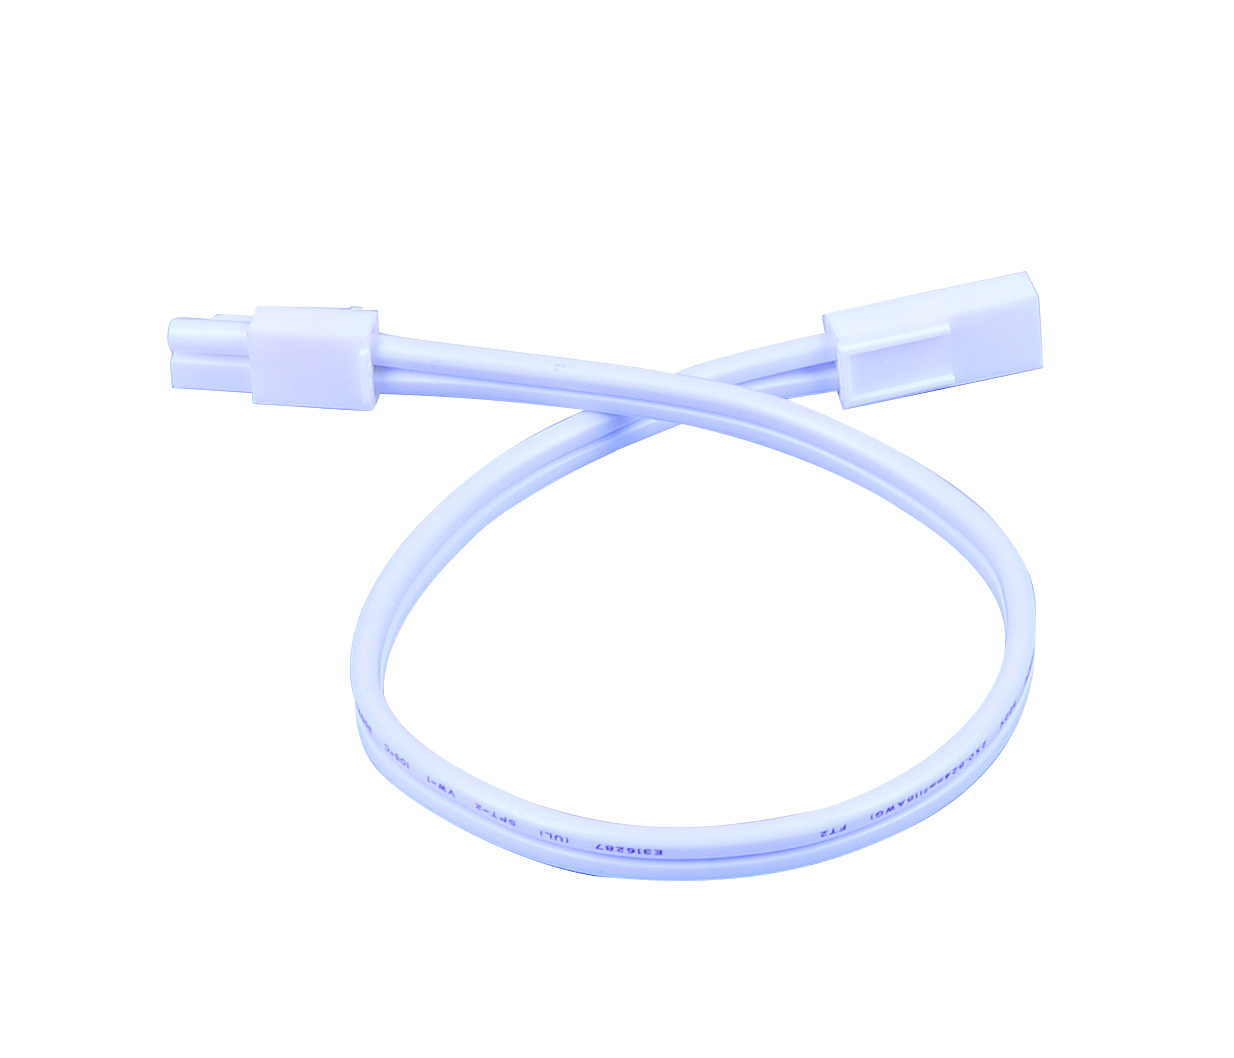 12 inch Connecting Cord from the CounterMax MX LD AC collection by Maxim 53886WT